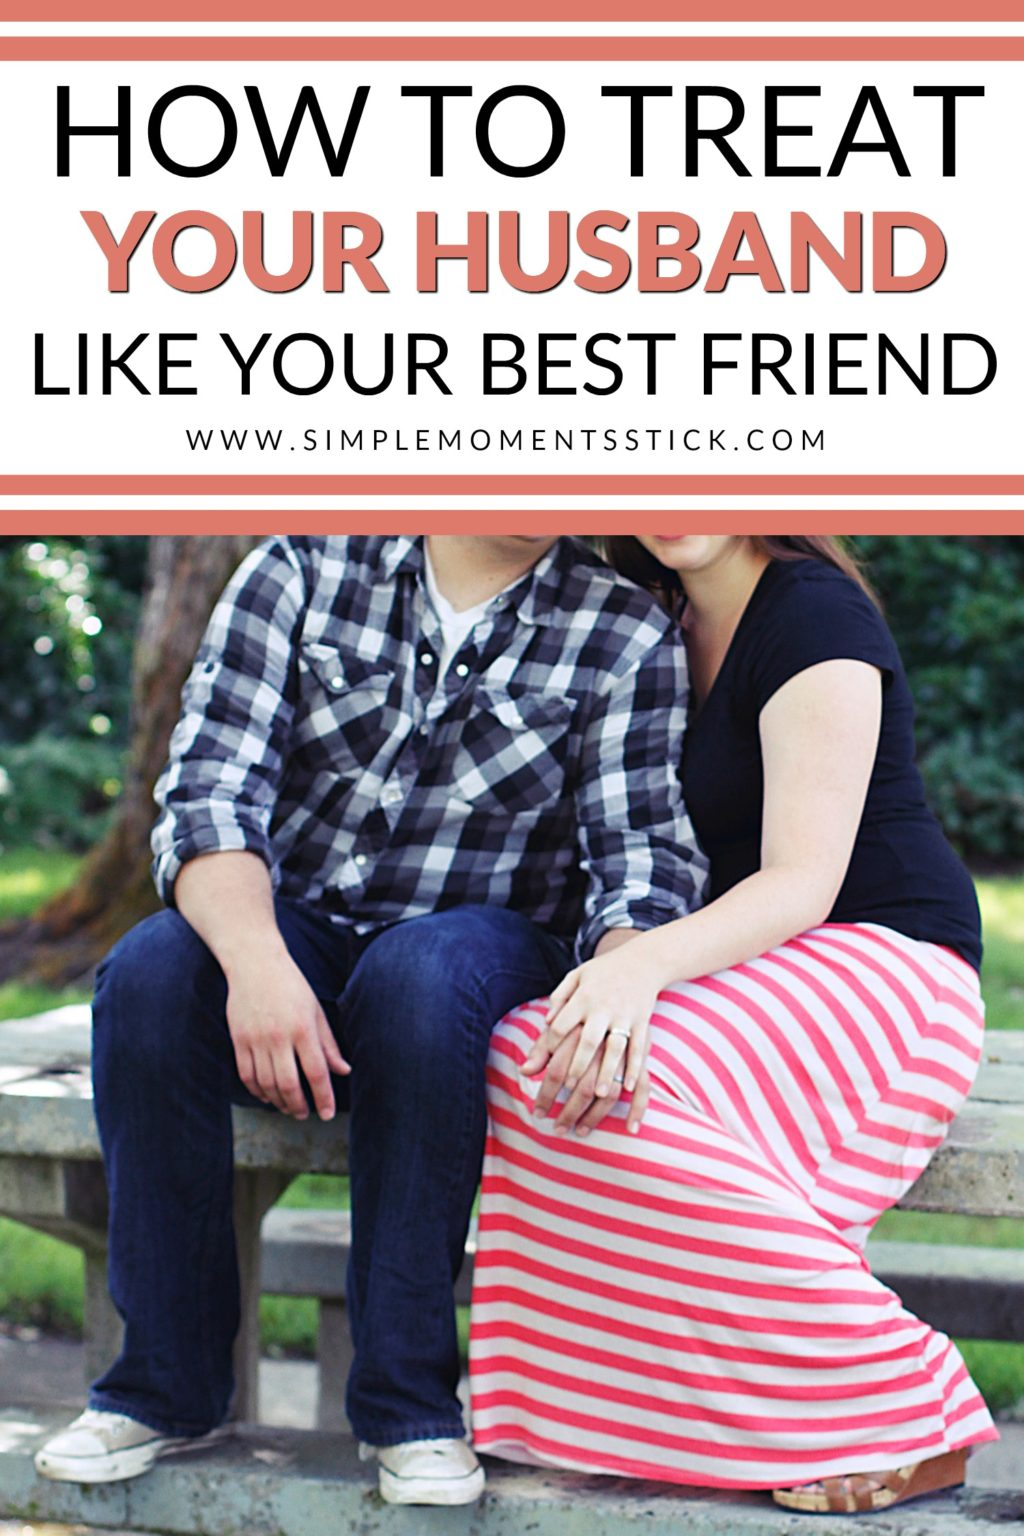 How to treat your husband like your best friend #marriage #marriagetips #marriageadvice